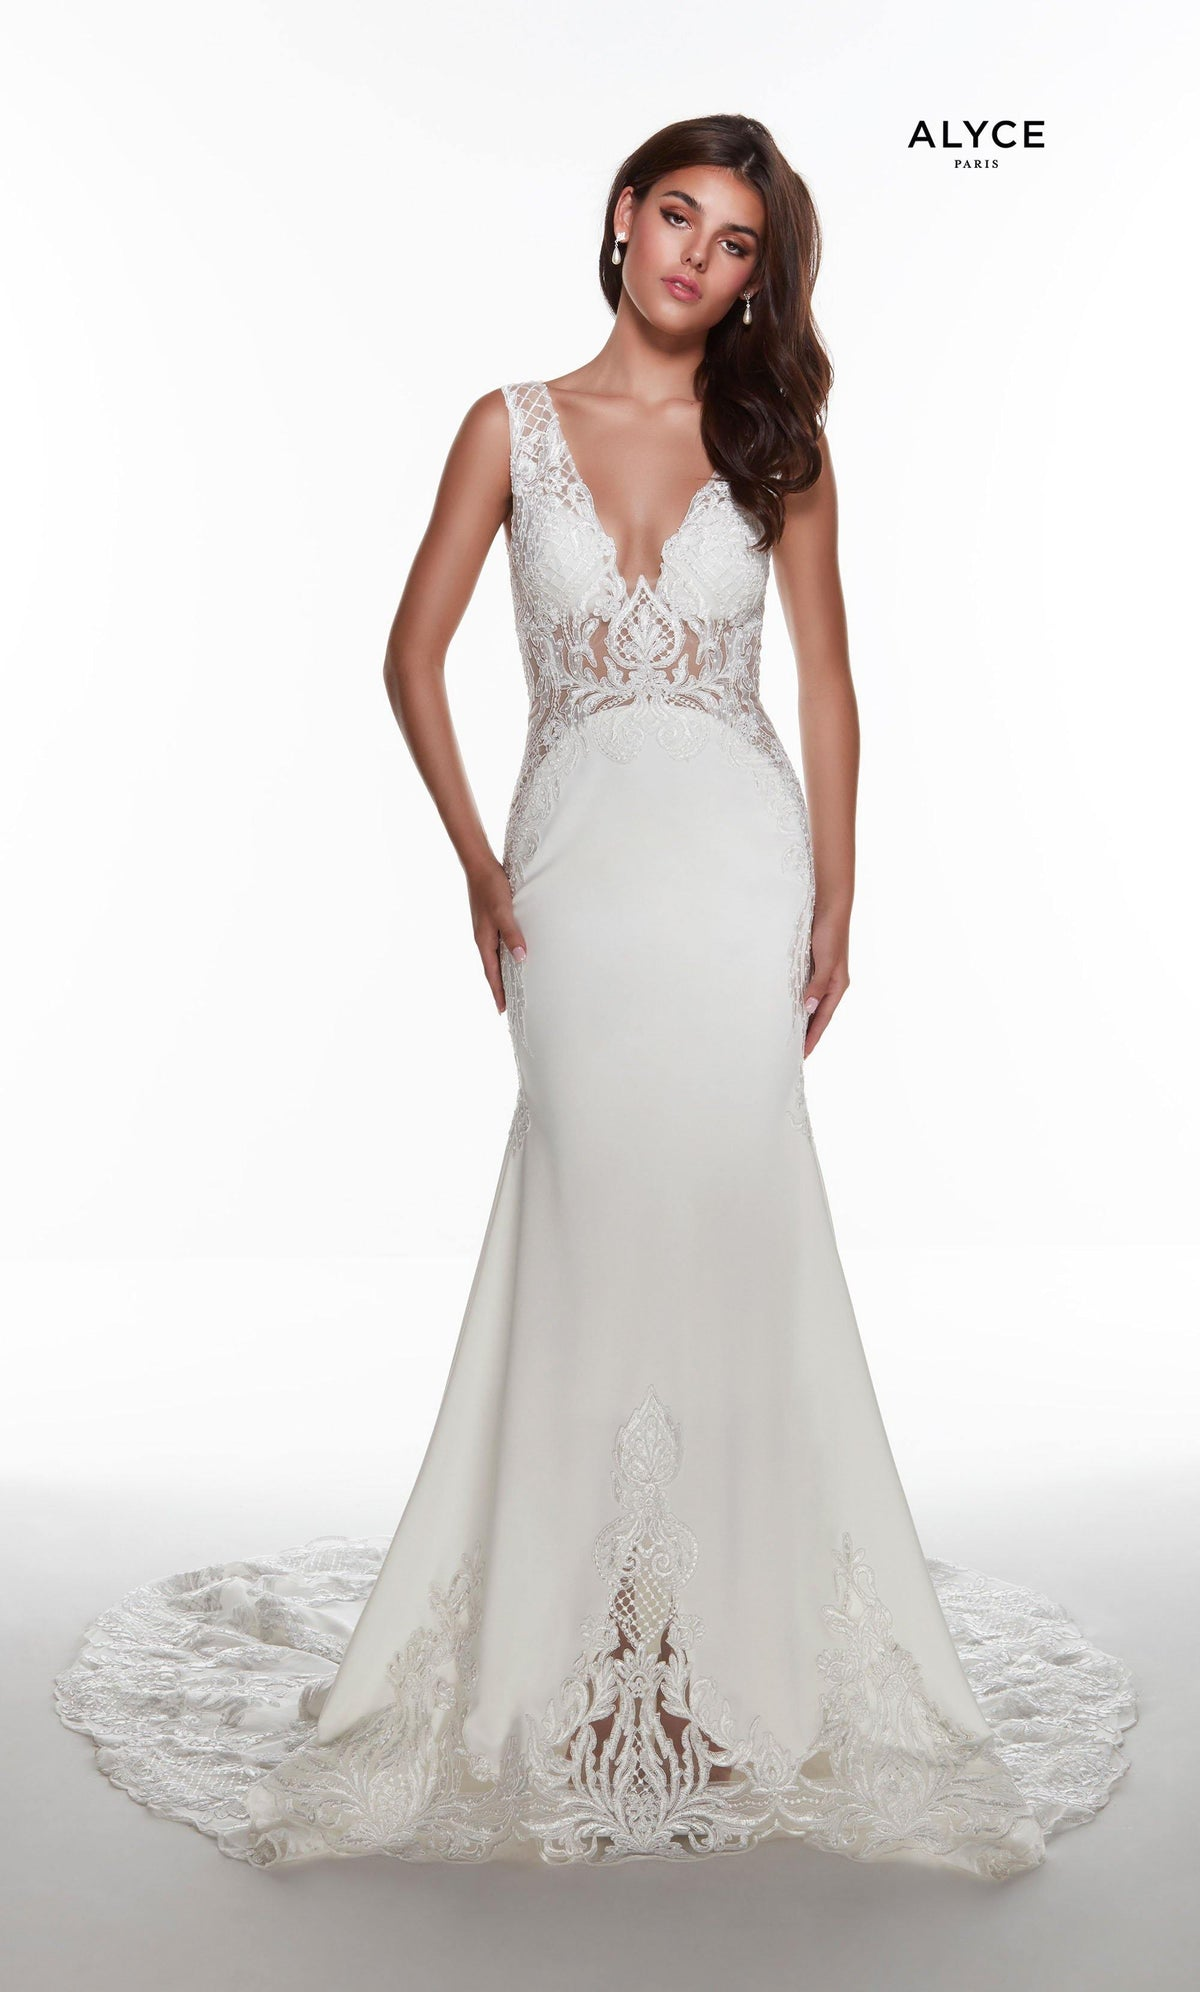 Long Ivory stretch crepe informal bridal gown with a plunging neckline and stone embellished lace detail